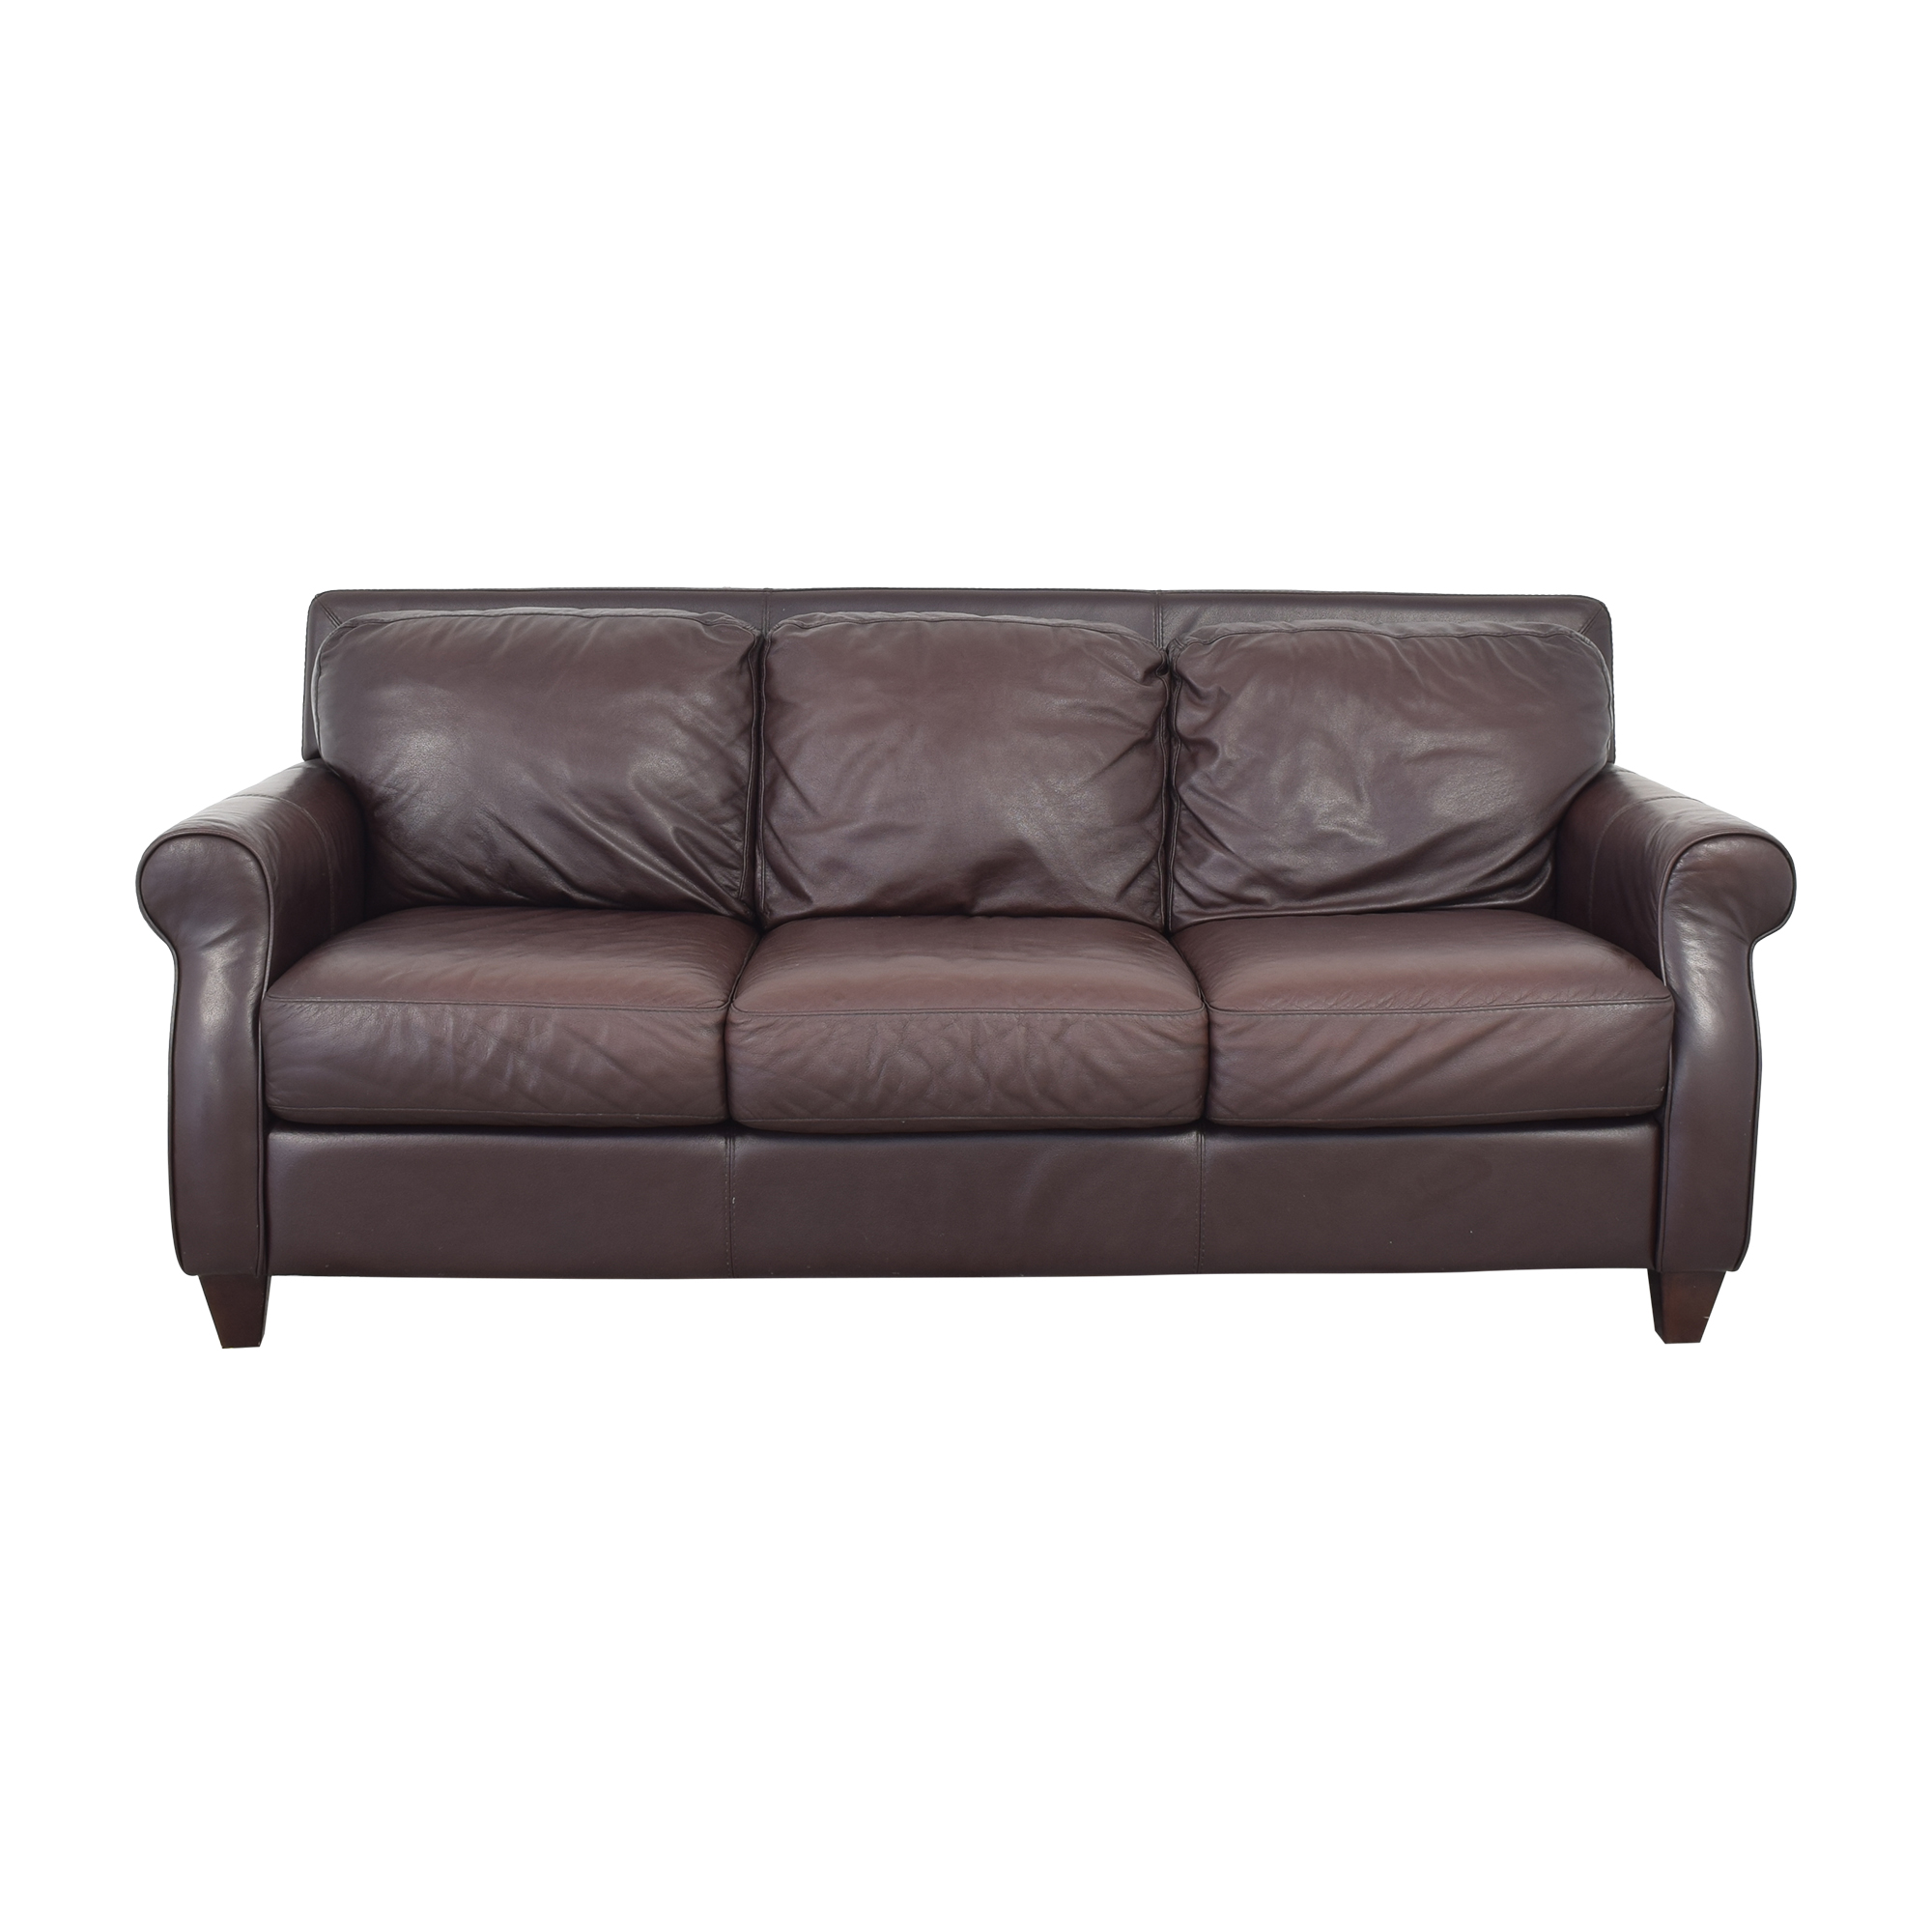 Raymour & Flanigan Raymour & Flanigan Three Cushion Sofa ma